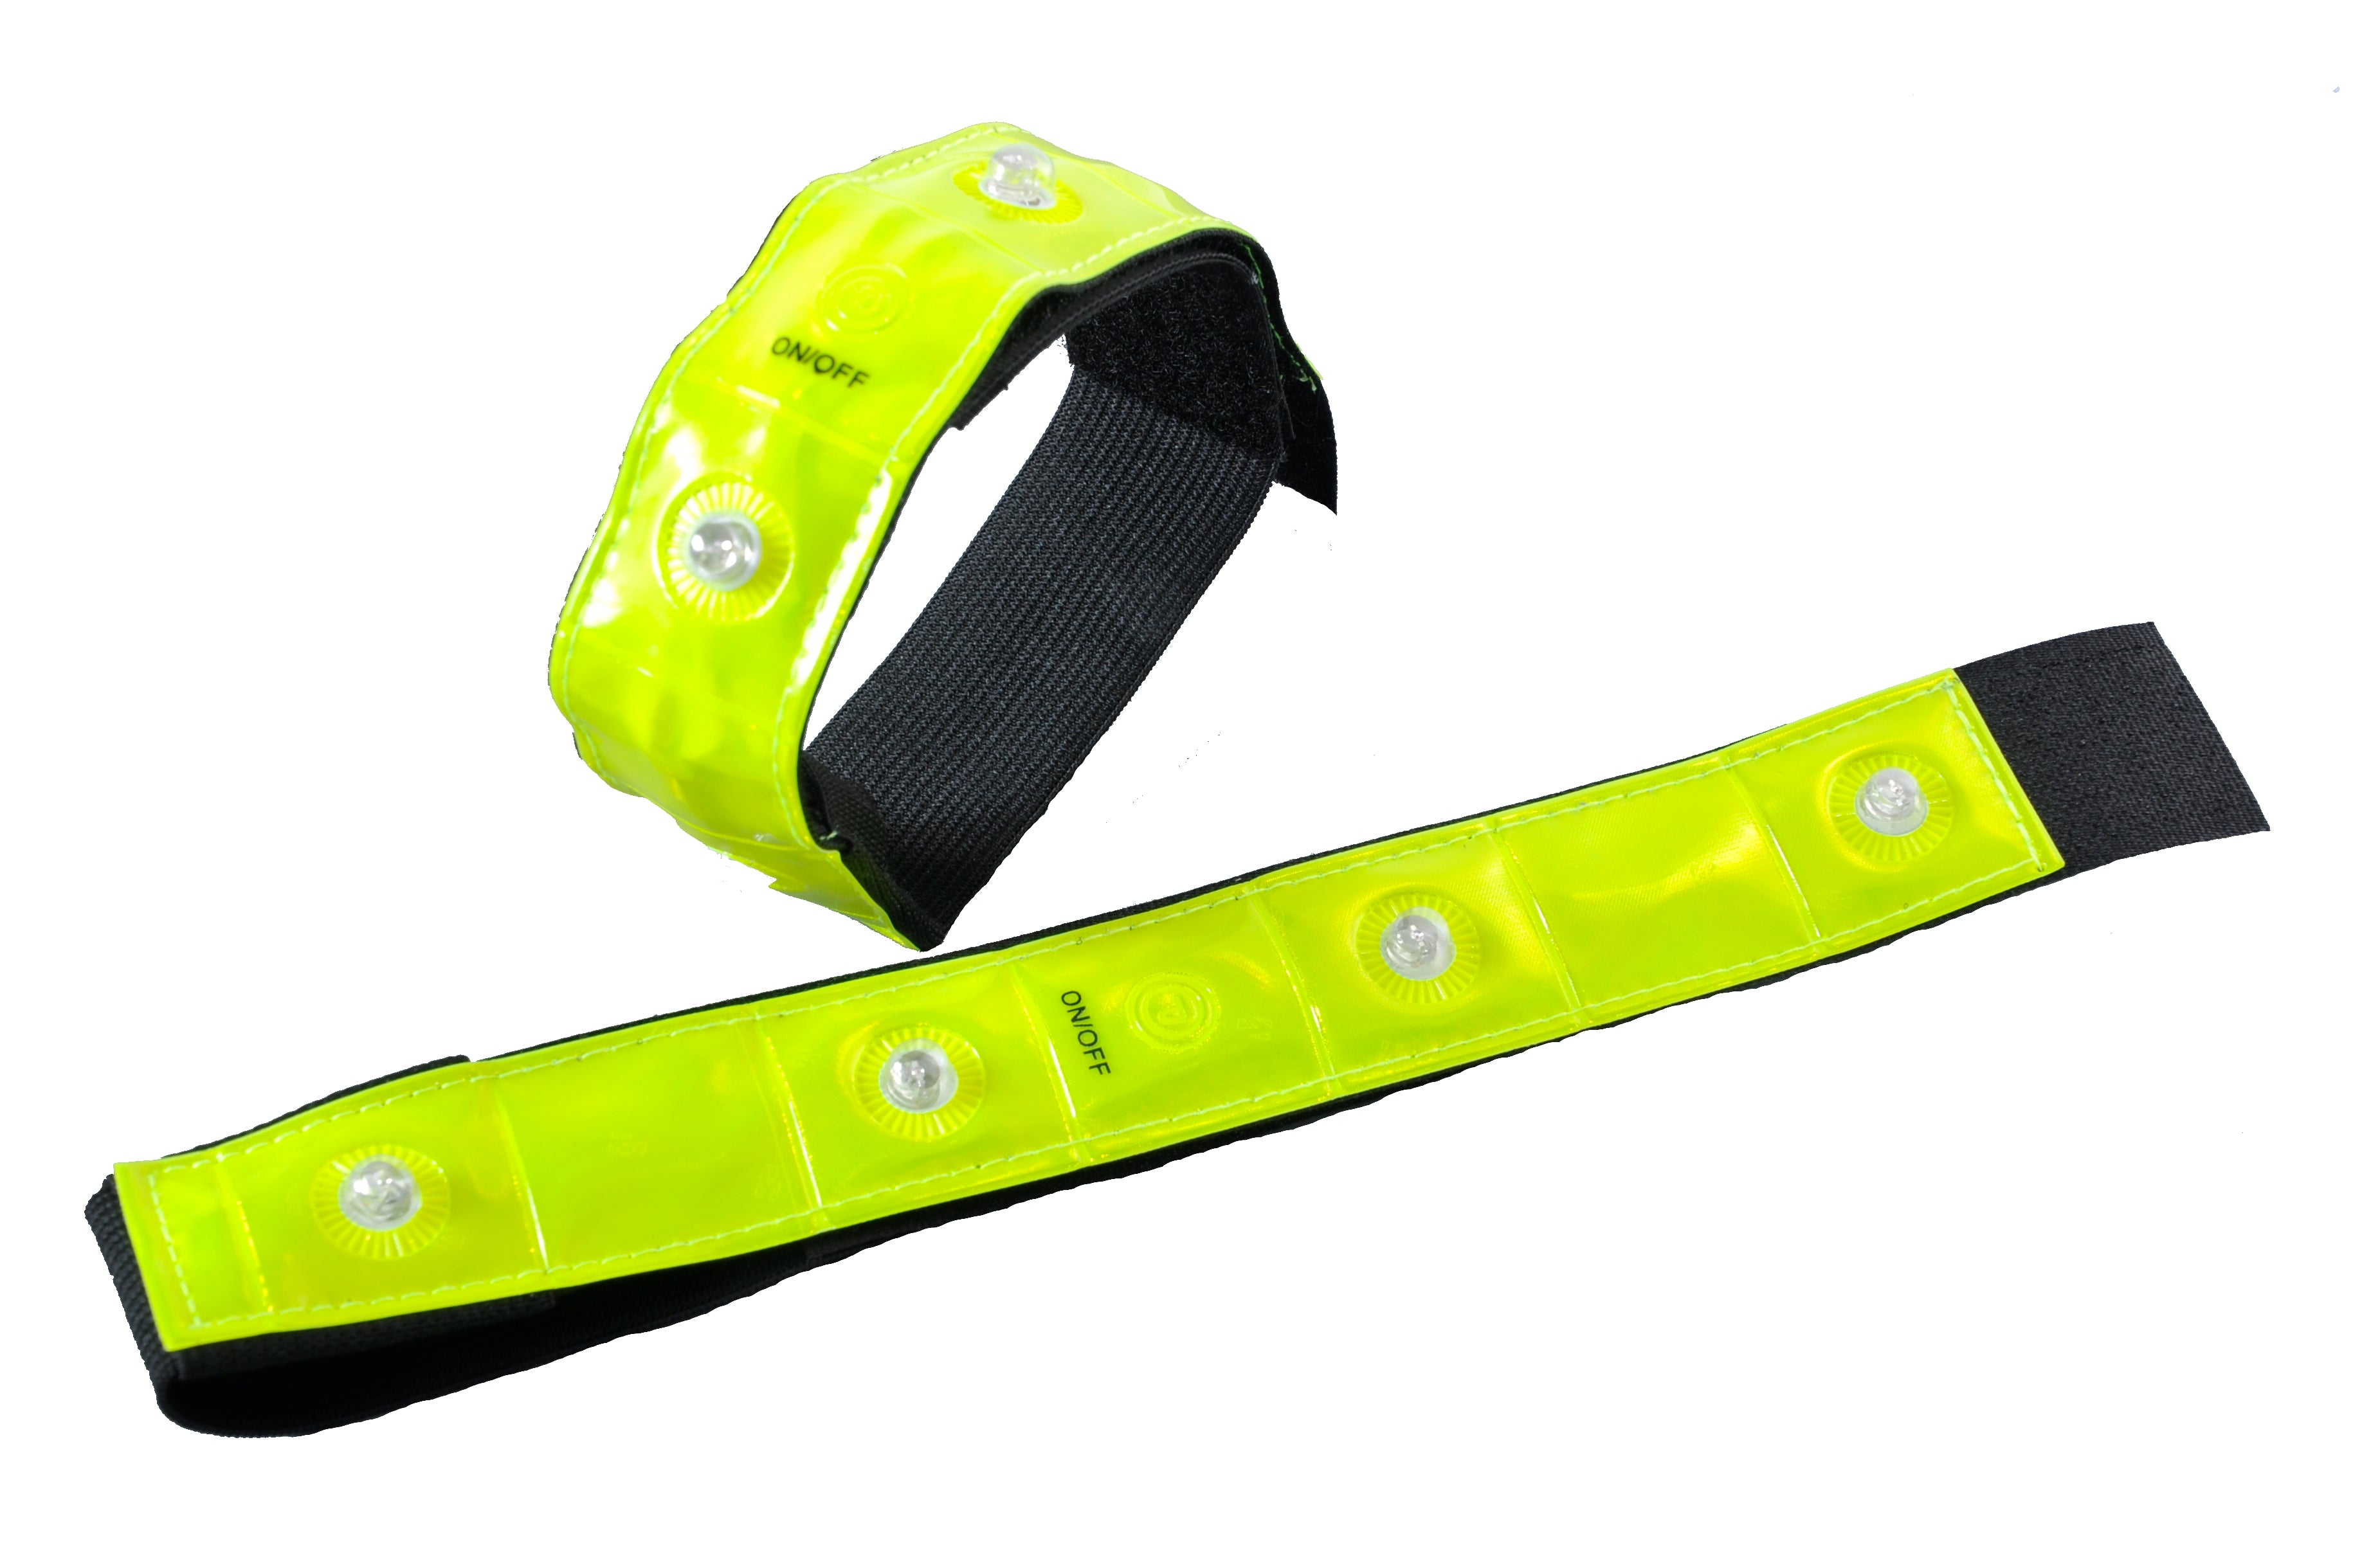 visibility official surveyors surveyor ultra safety main s kwiksafety high shopify class products bands reflective vest mesh cool by